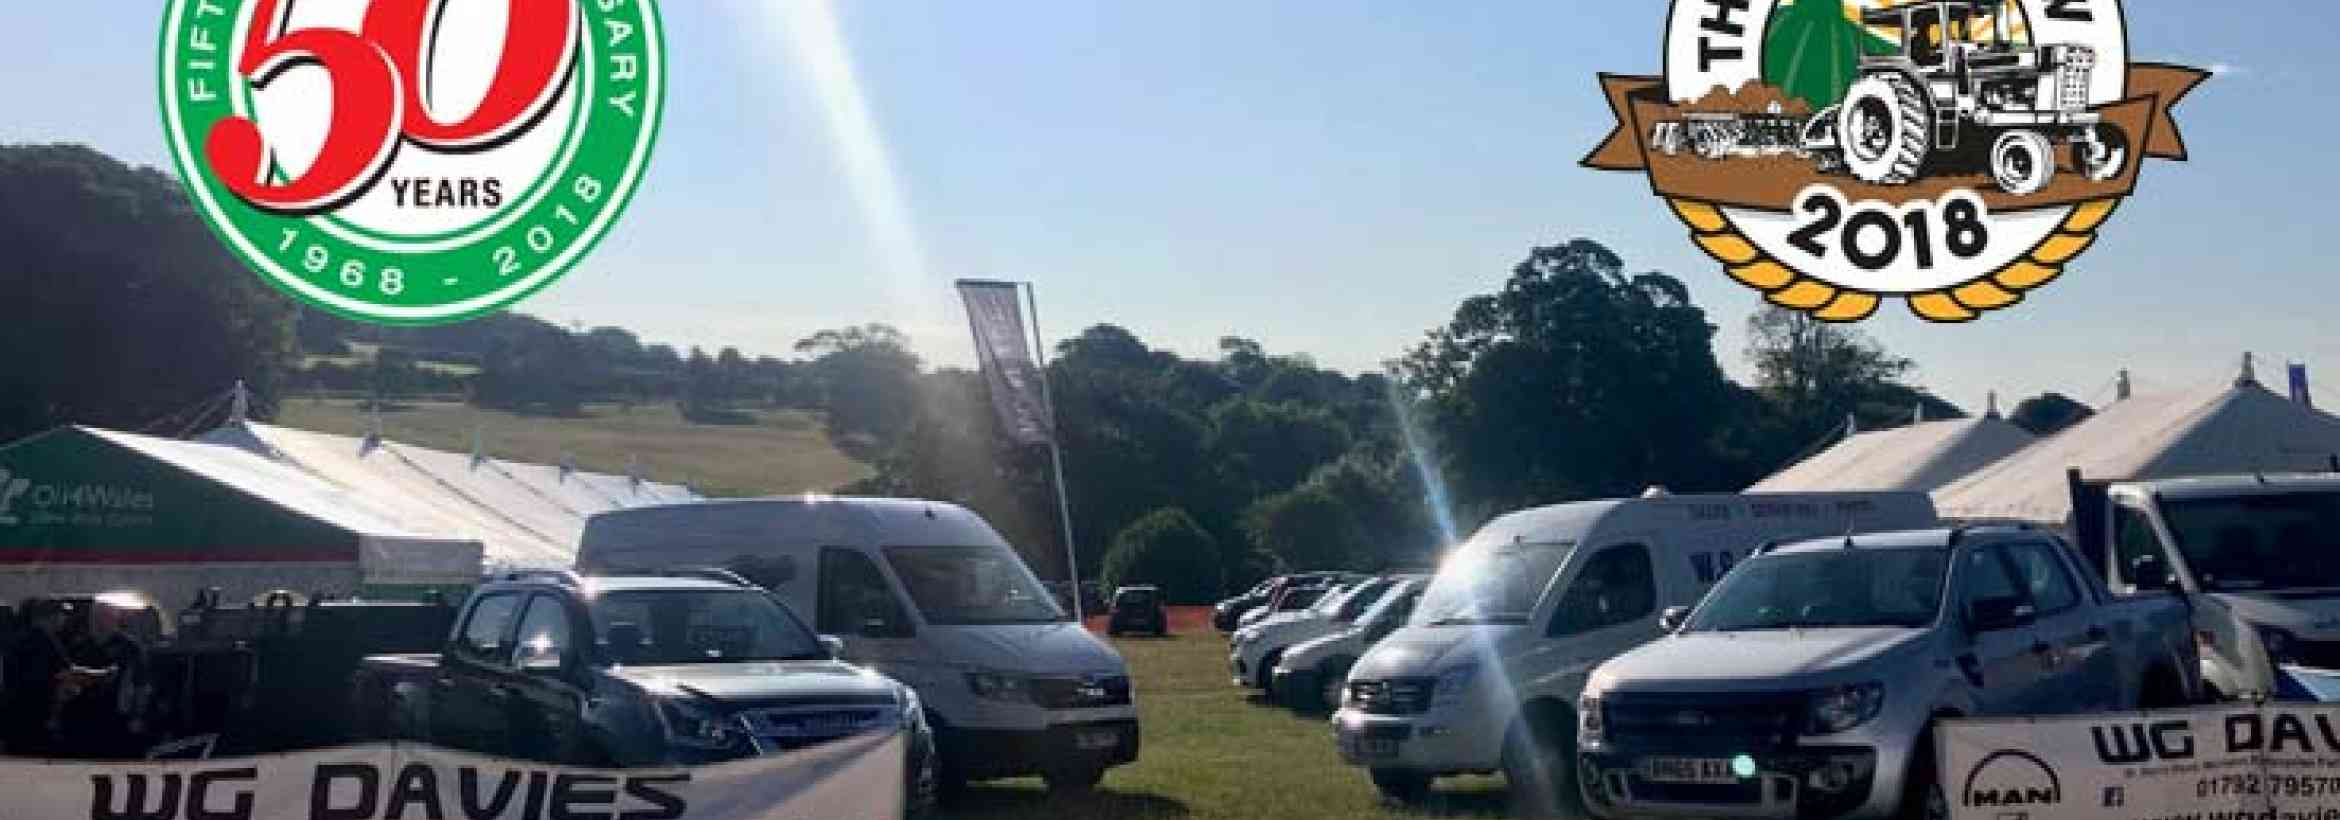 Gower Show Story 2018